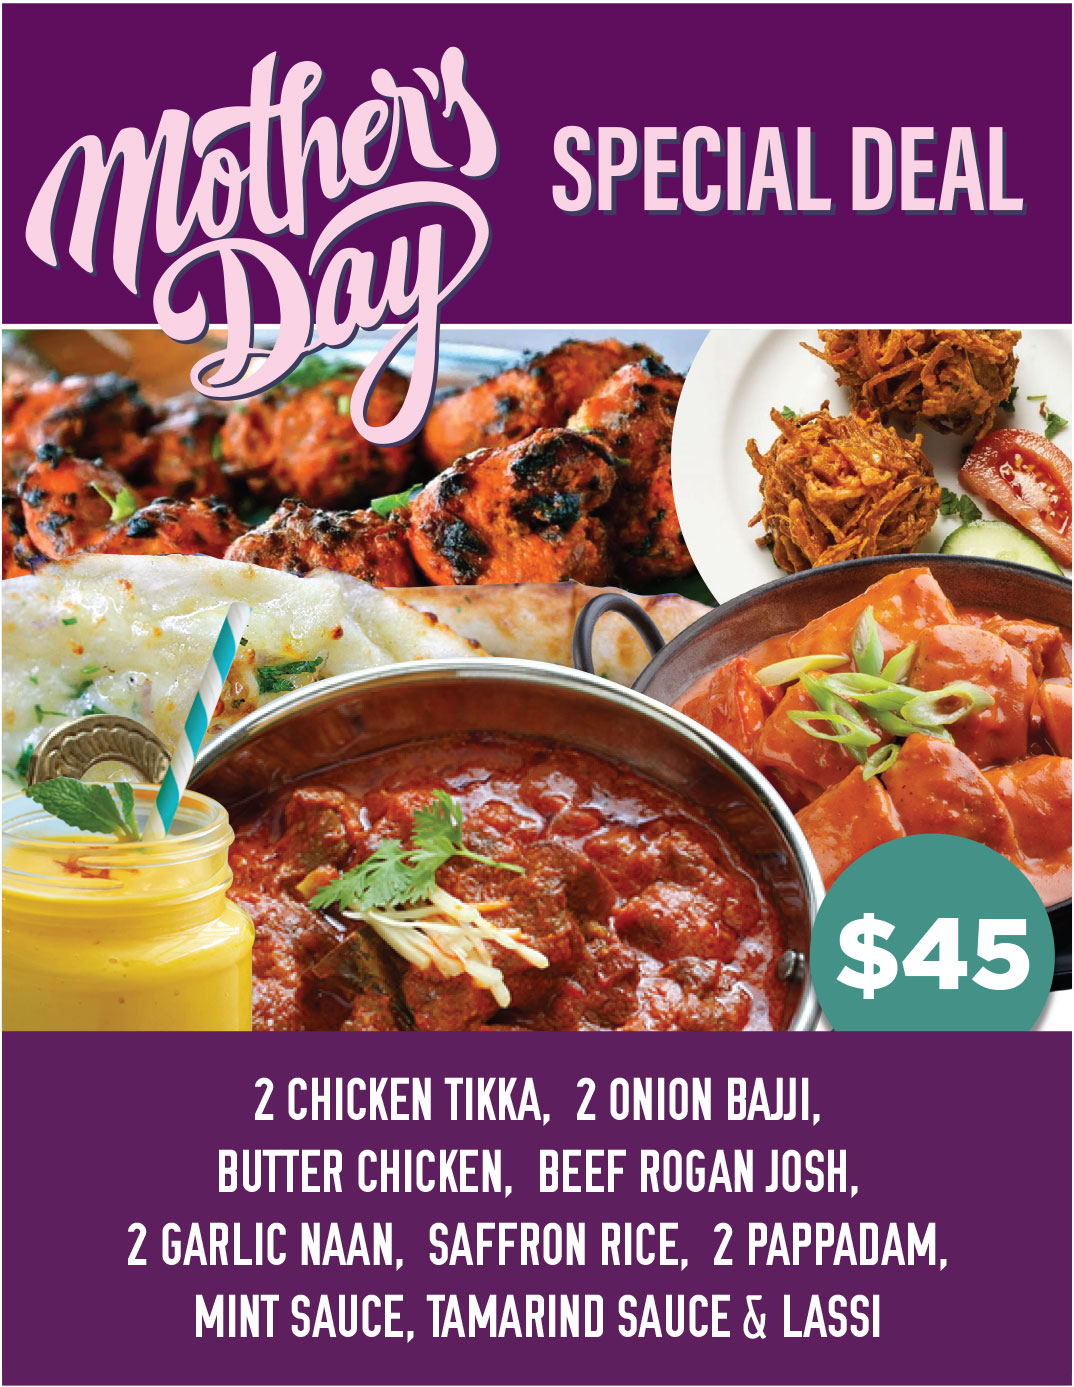 Mothers Day Special Deal - 24 Spices Indian Restaurant